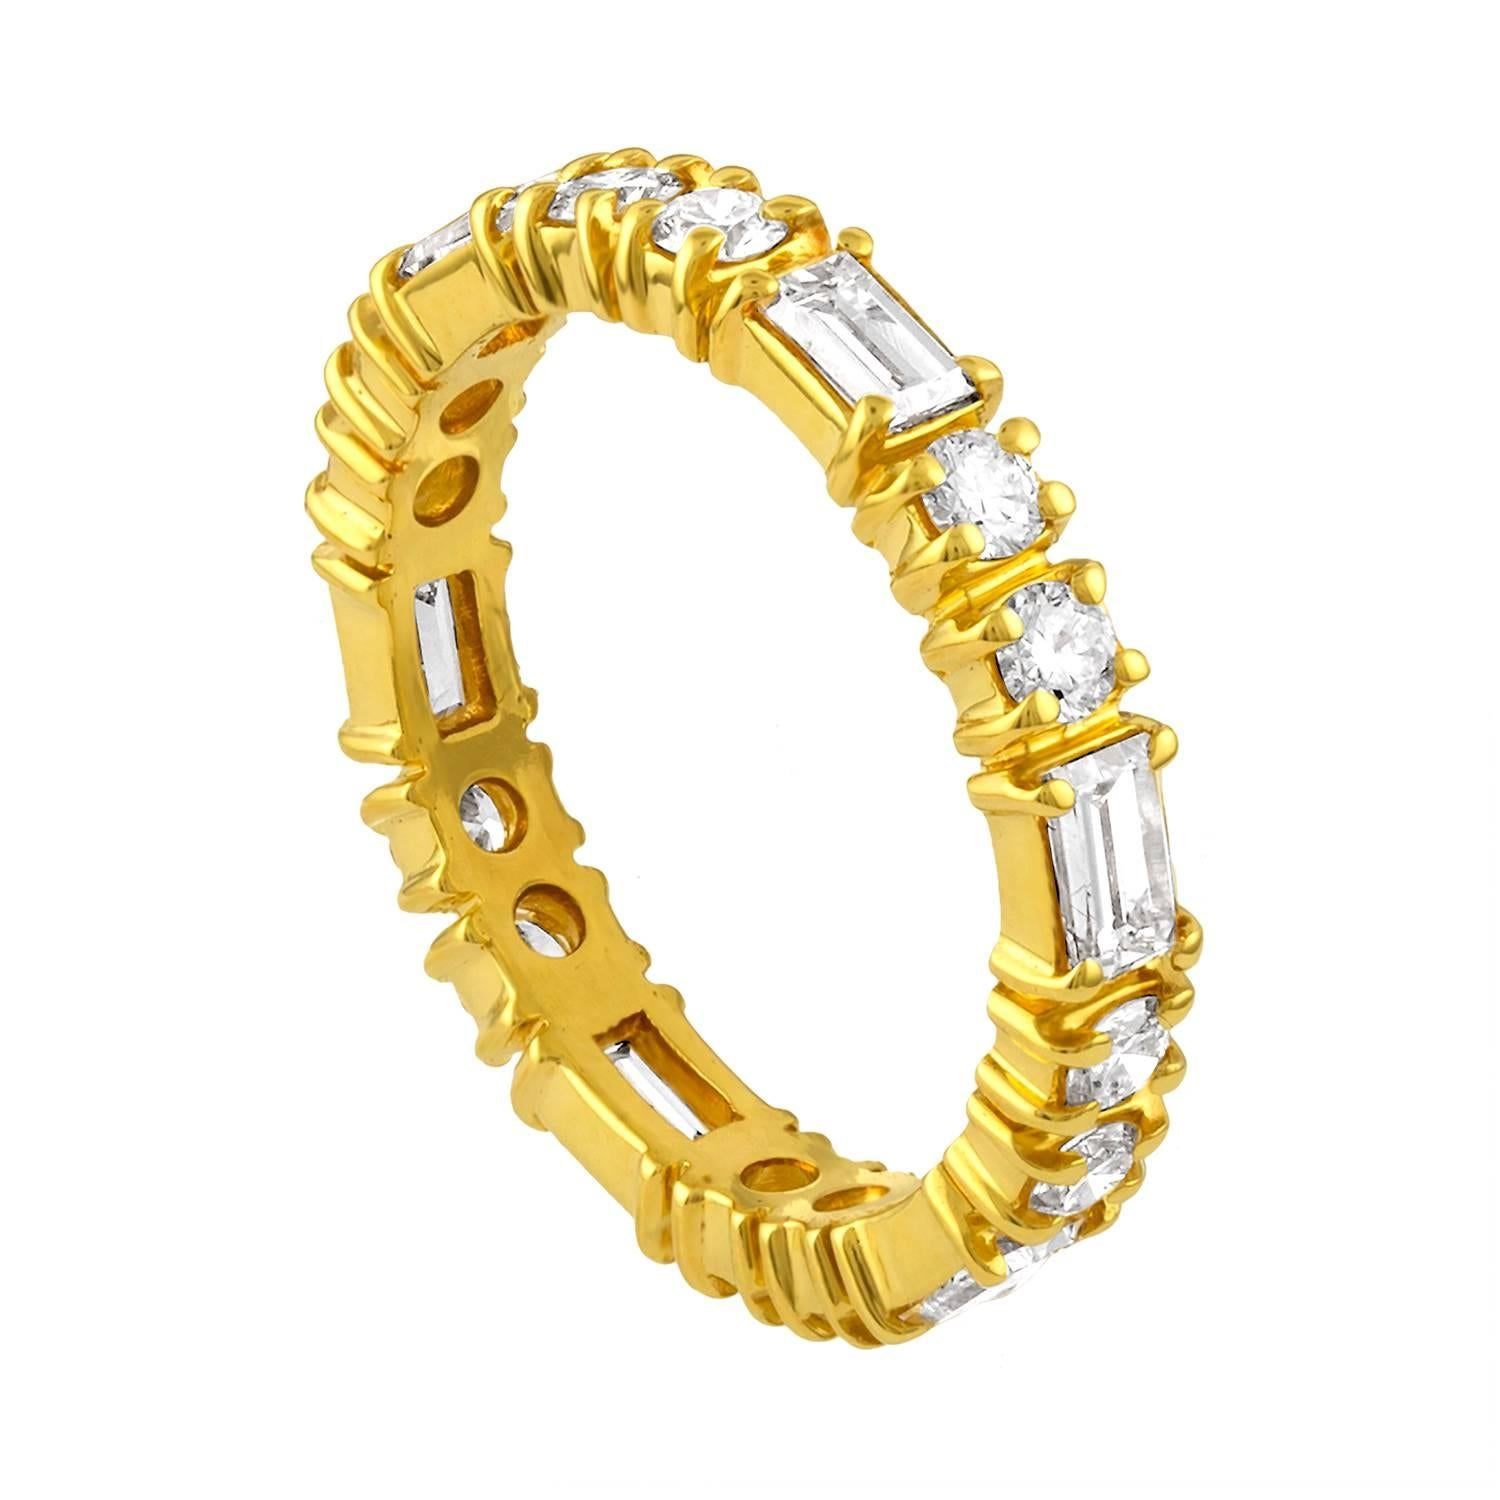 1.50 Carat Round and Baguette Diamond Gold Eternity Band Ring